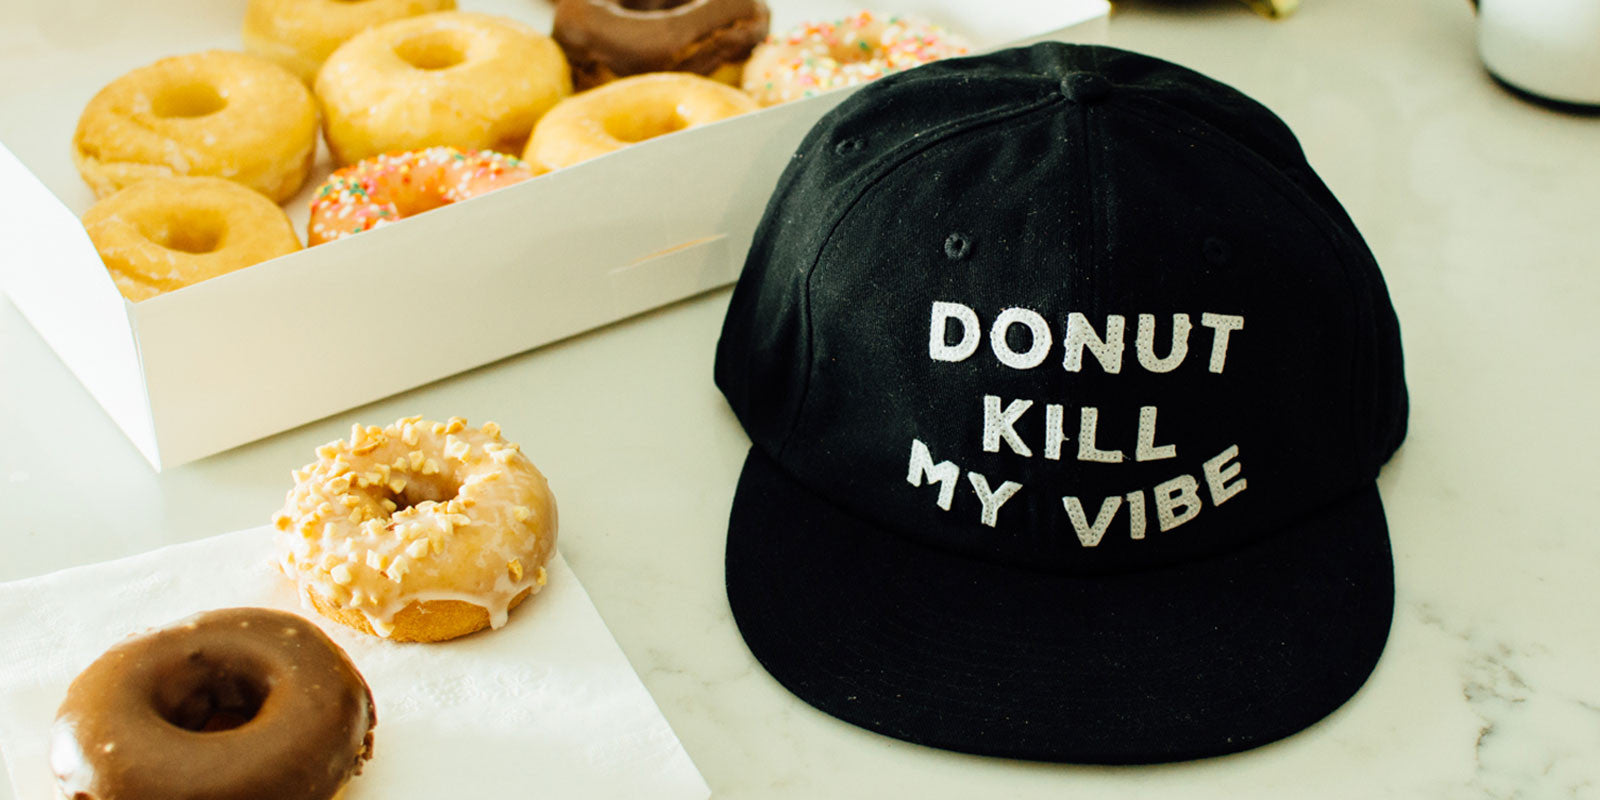 Donut Kill My Vibe Vintage Style Cotton Twill Donuts Six Panel Strapback Cap Best Food Meme Hat